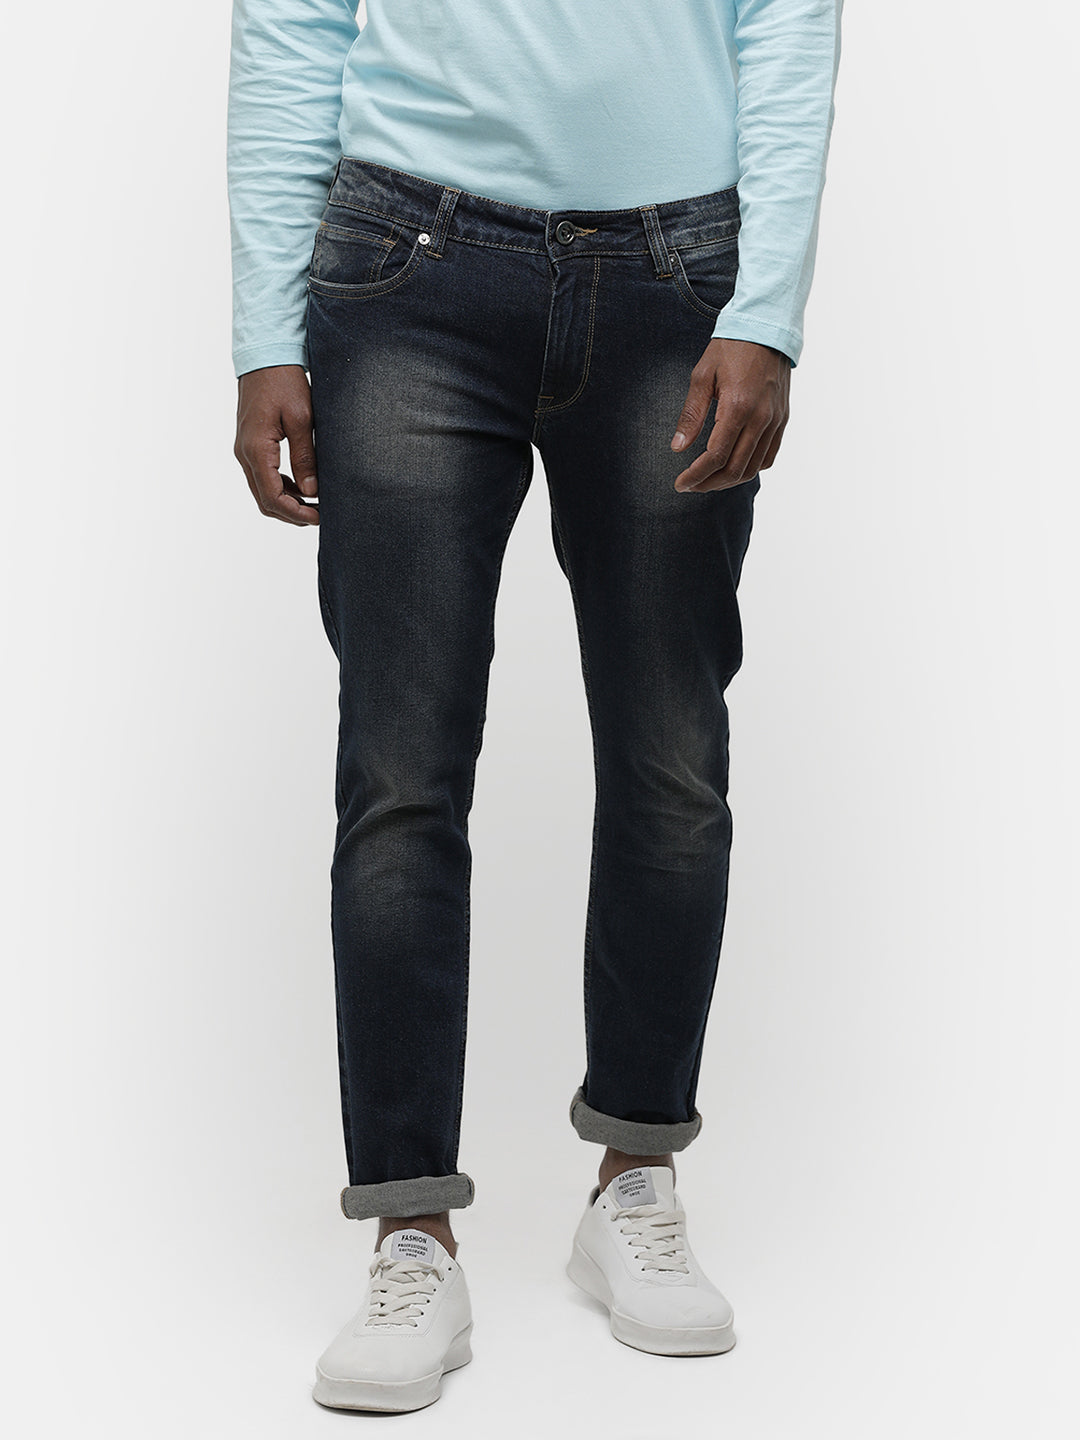 Men's dark indigo denim